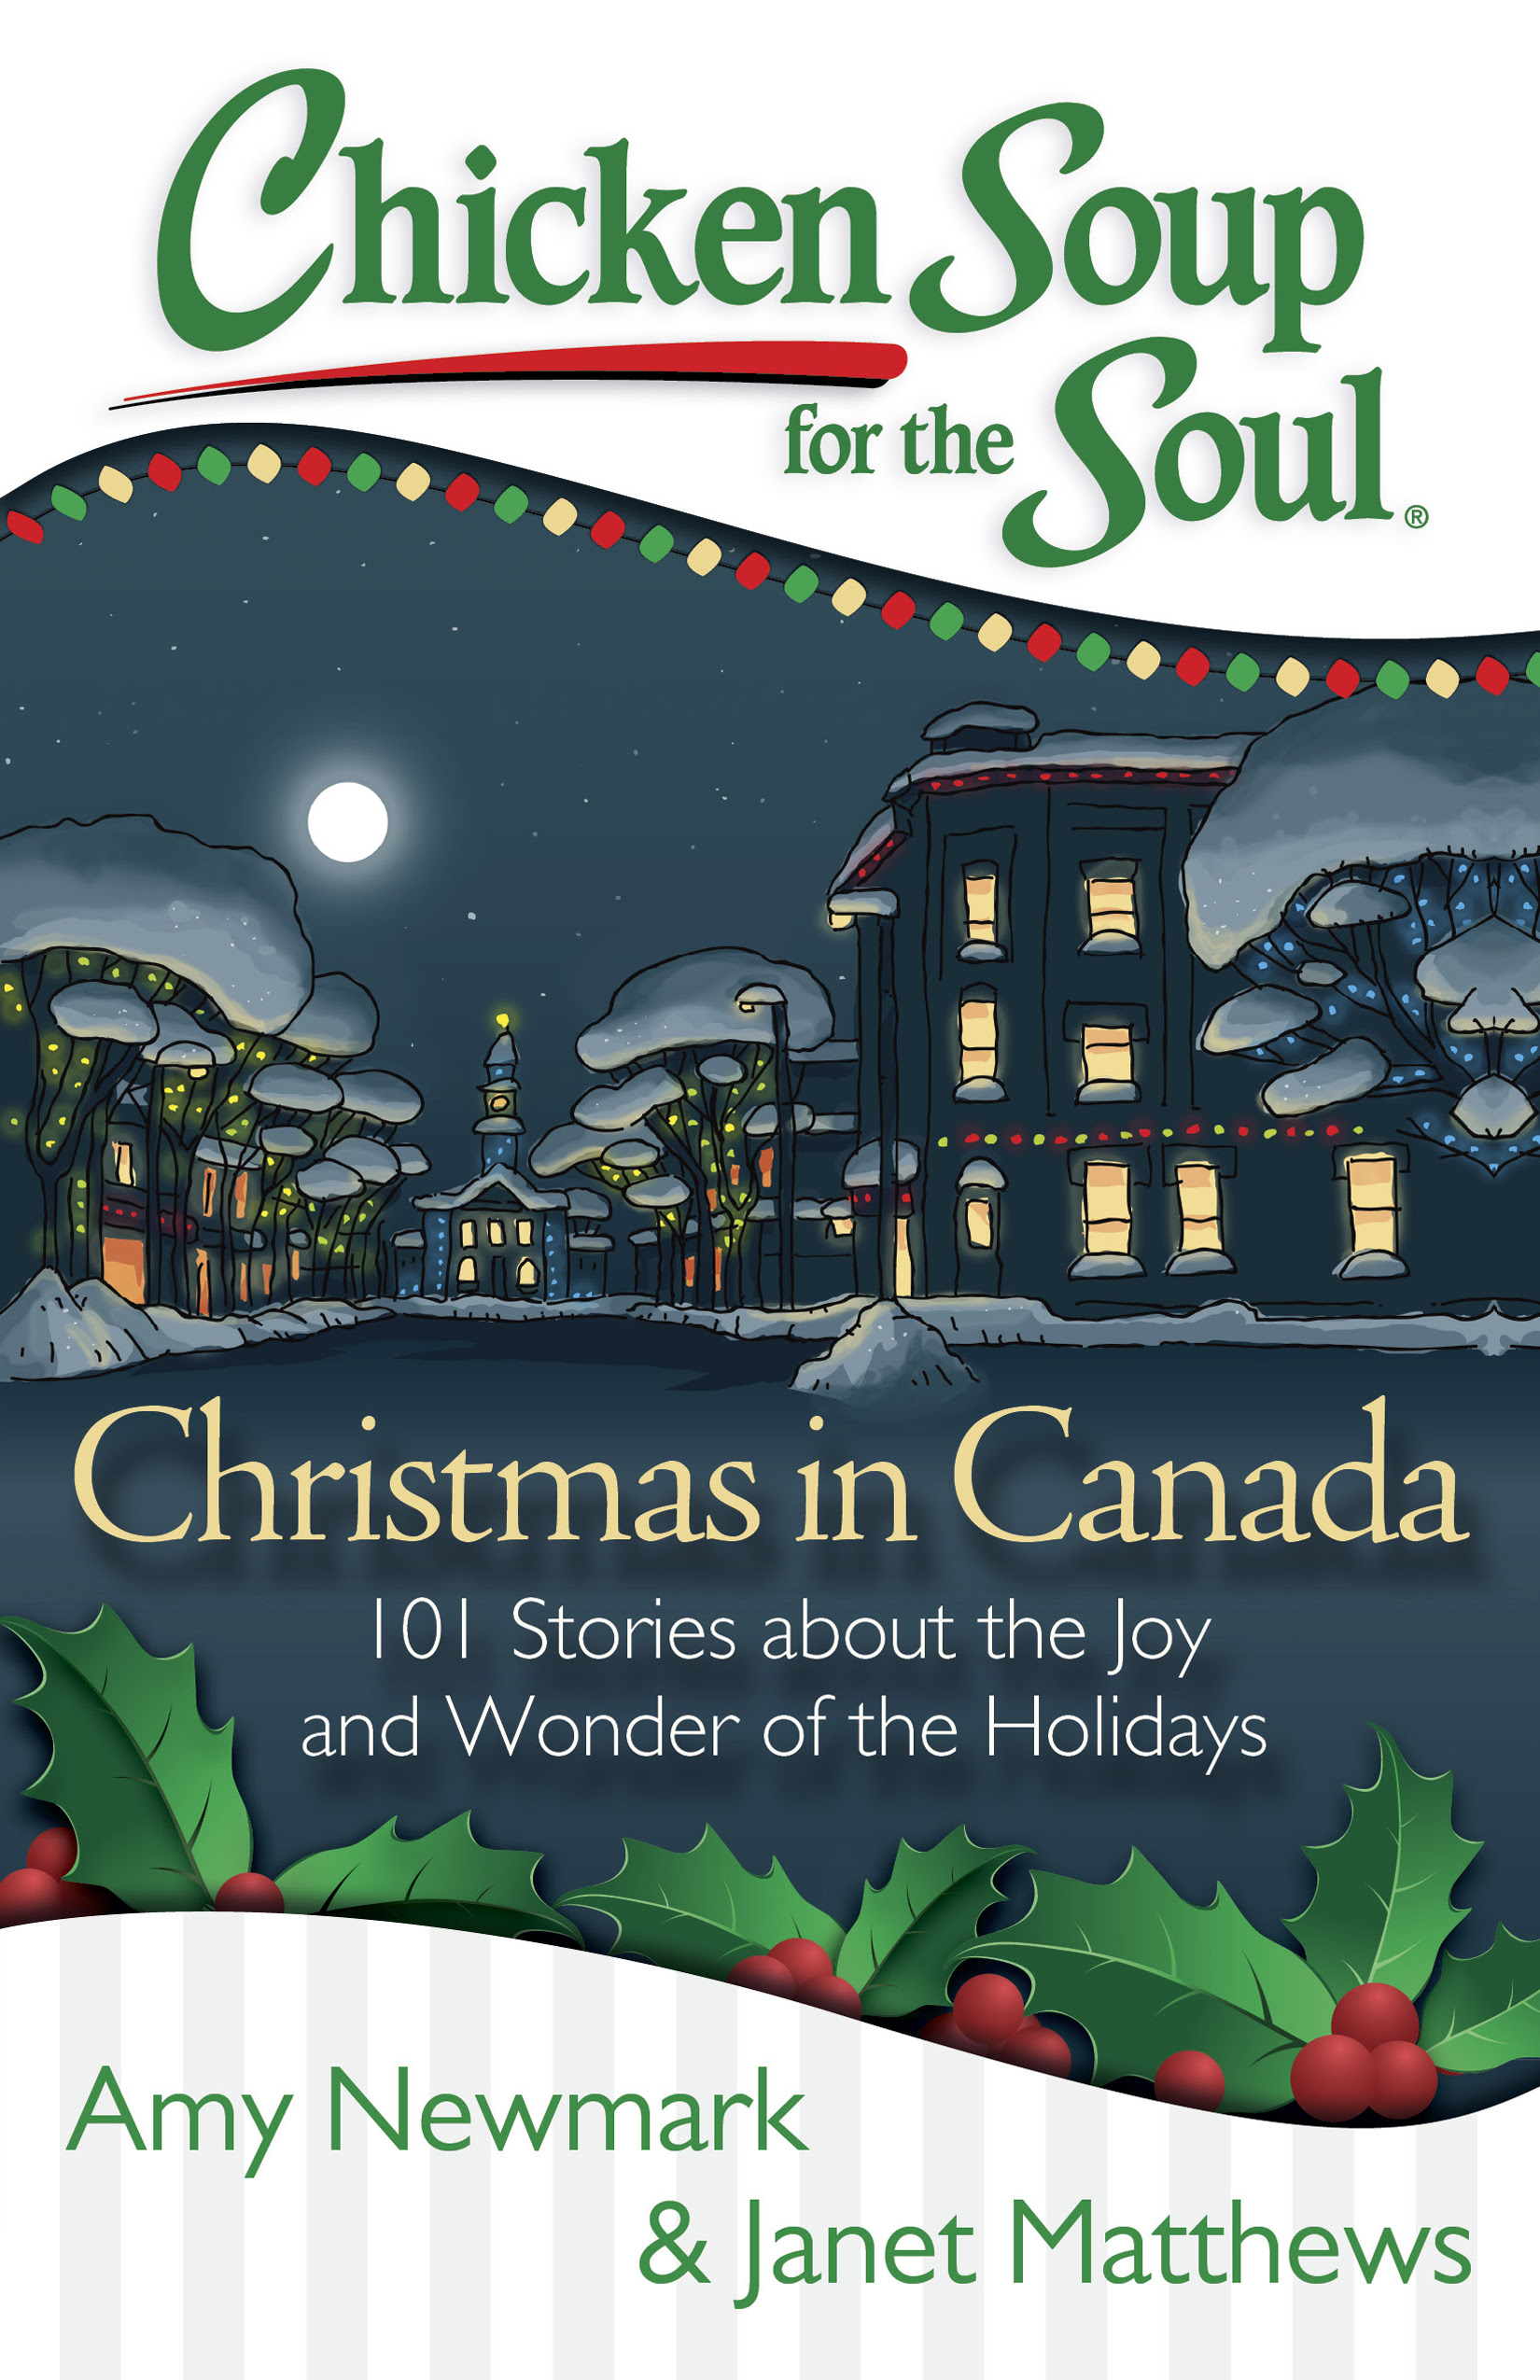 Chicken Soup For The Soul Christmas In Canada Giveaway - 3 Prizes!